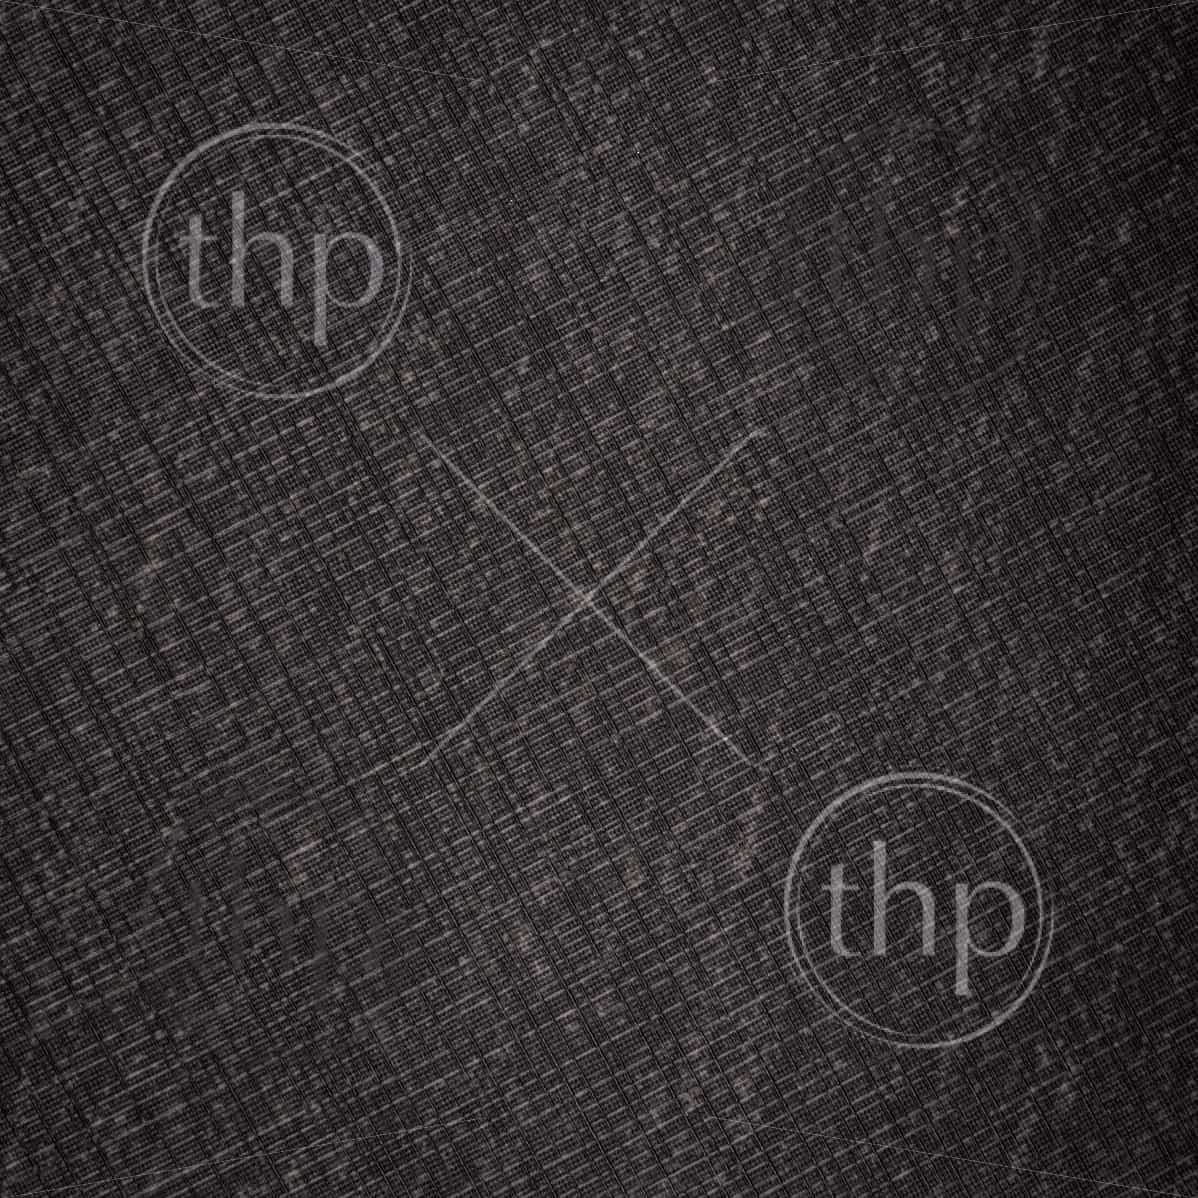 Detailed texture of deep black linen as a background